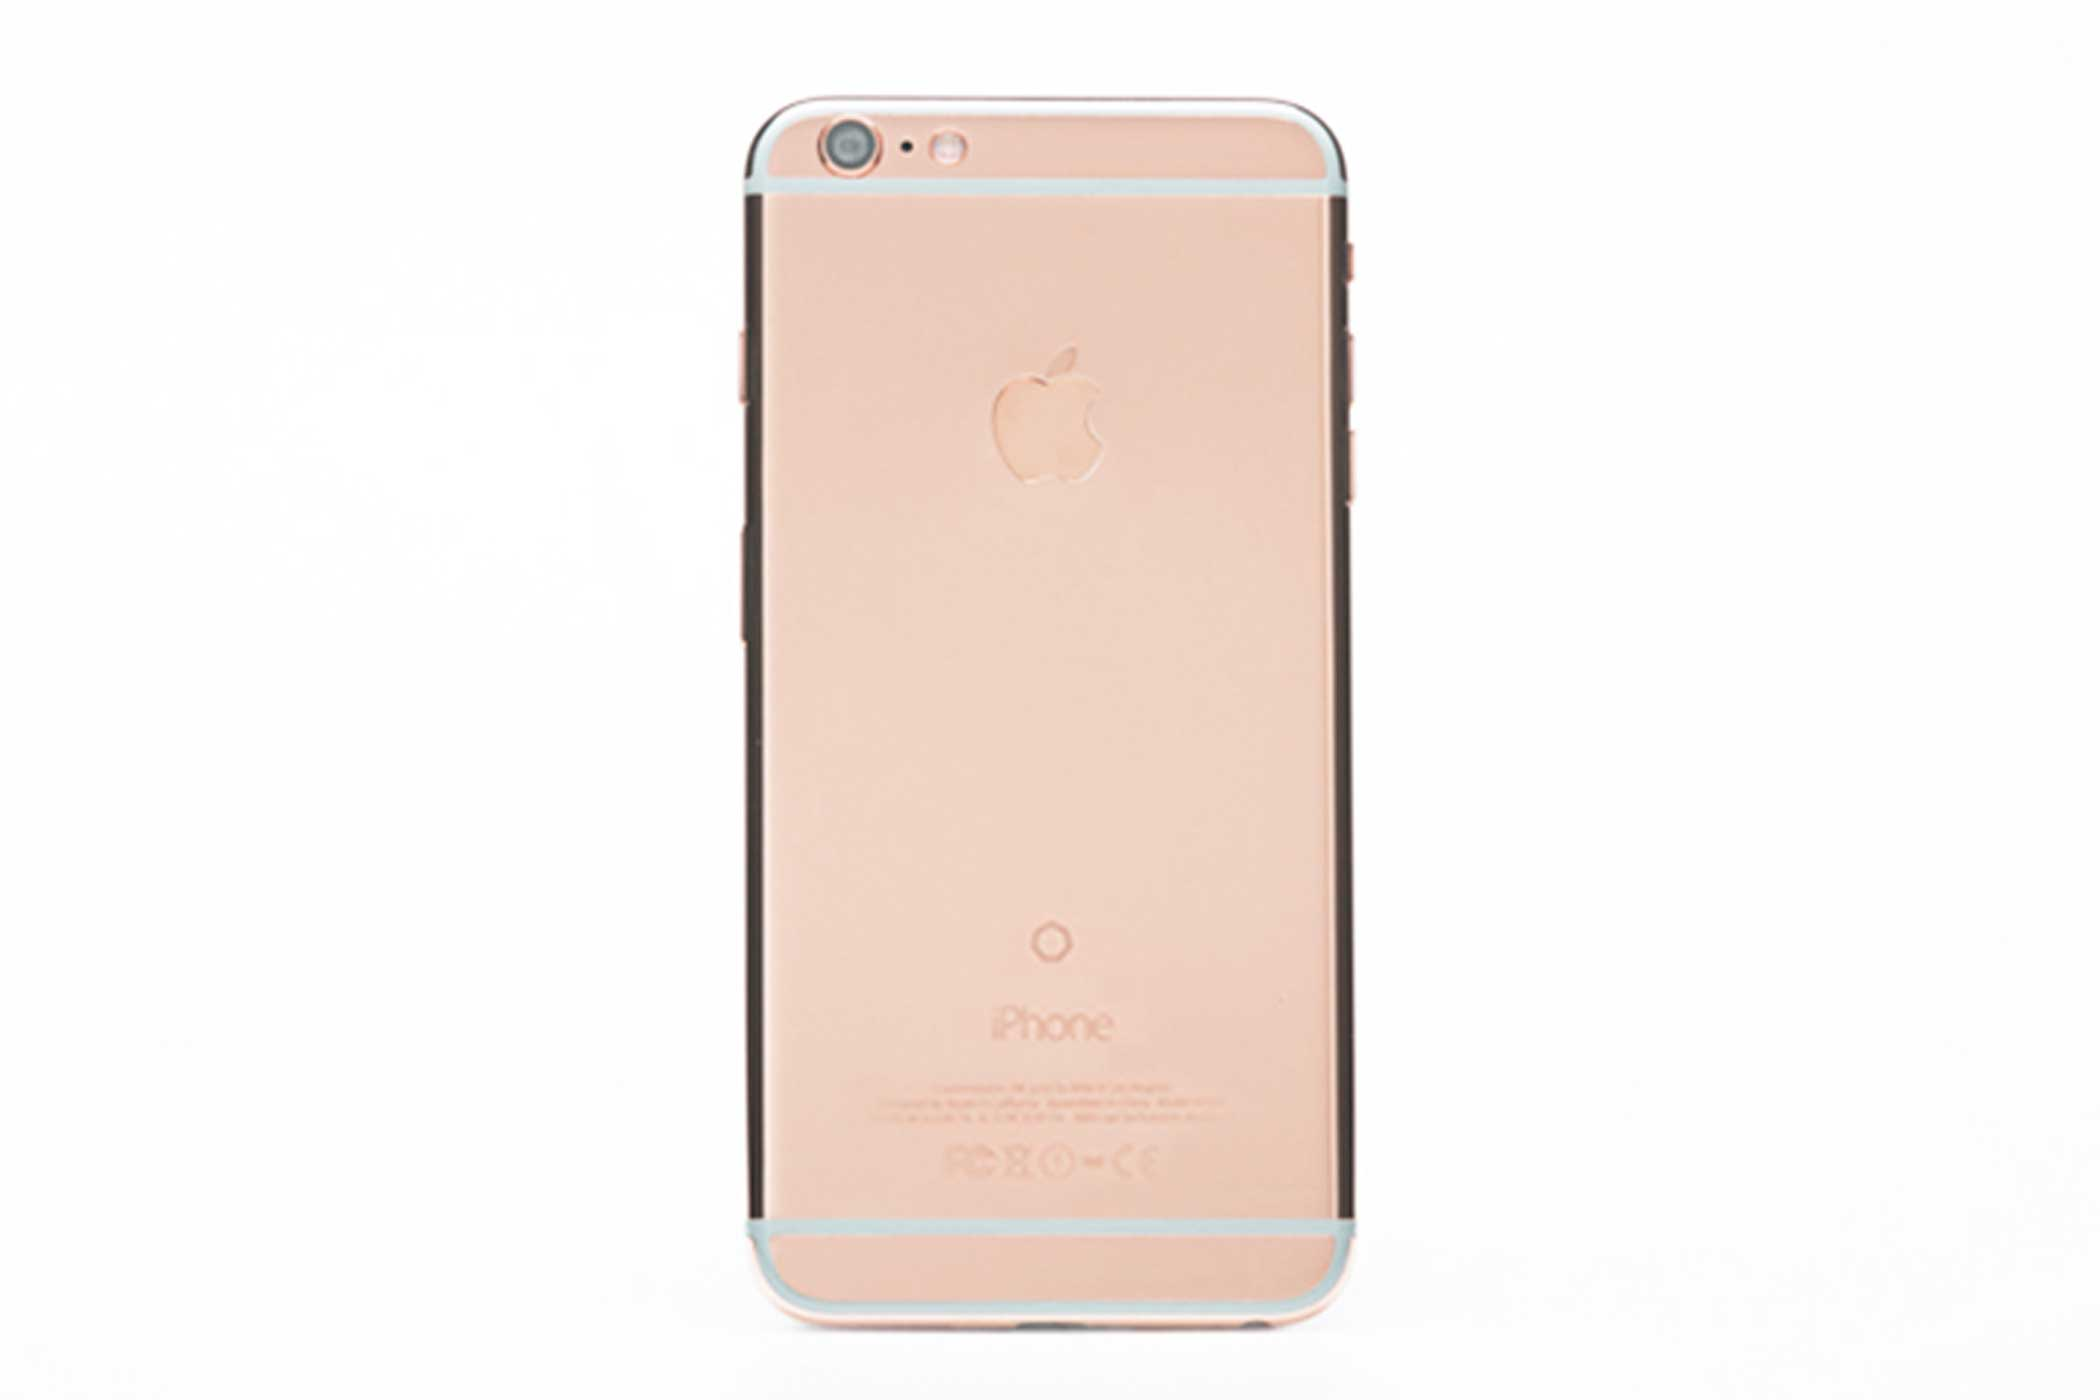 The cheapest device in Brikk's new line is the Lux iPhone 6s Pink Gold with a 4.7  screen, which costs                               $7,995. The yellow gold version at the same price is also available.